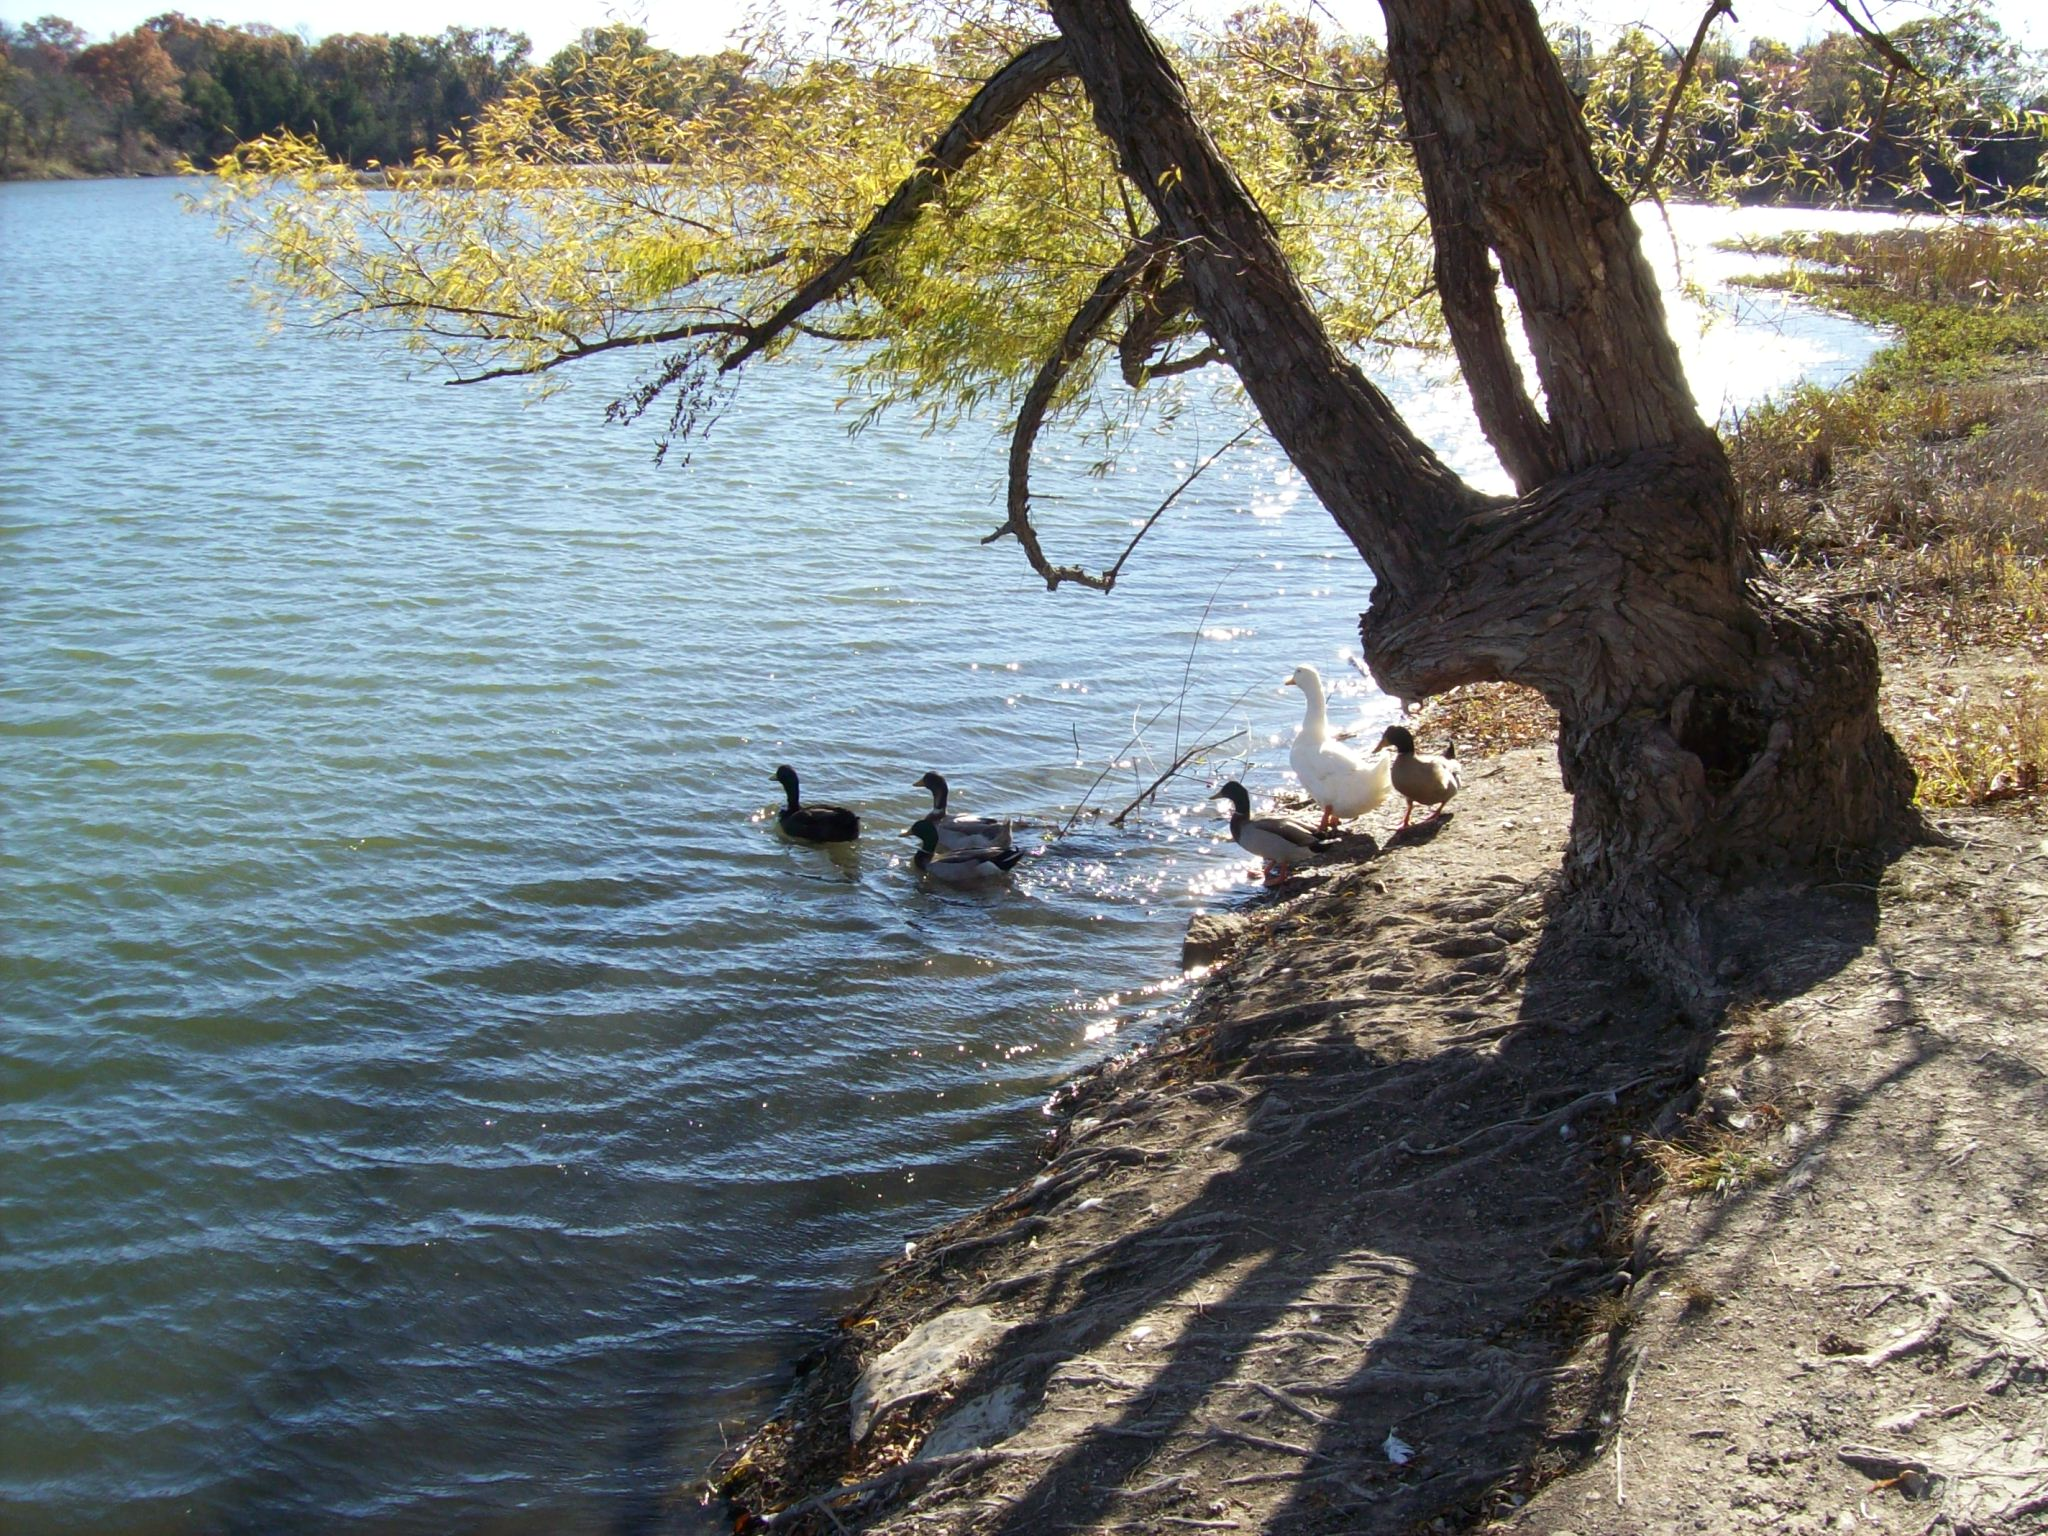 Ducks walking from the shore into water.